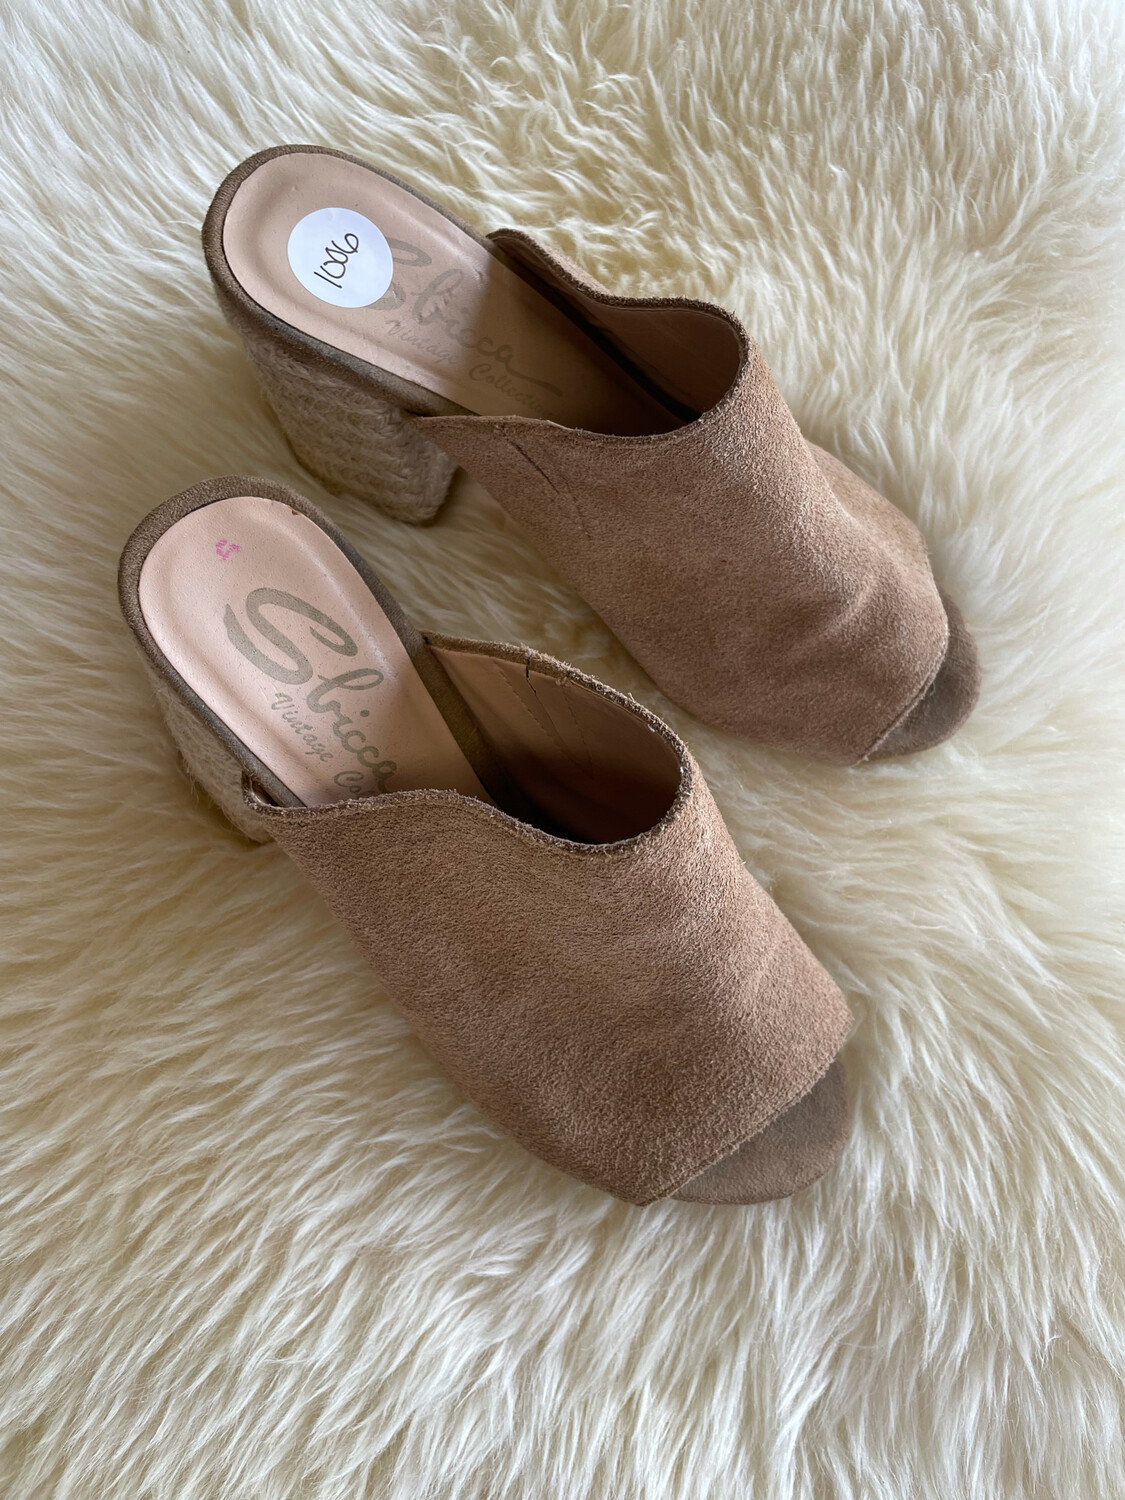 Sbicca Brown Suede Mule w/Rope Heel - Size 7